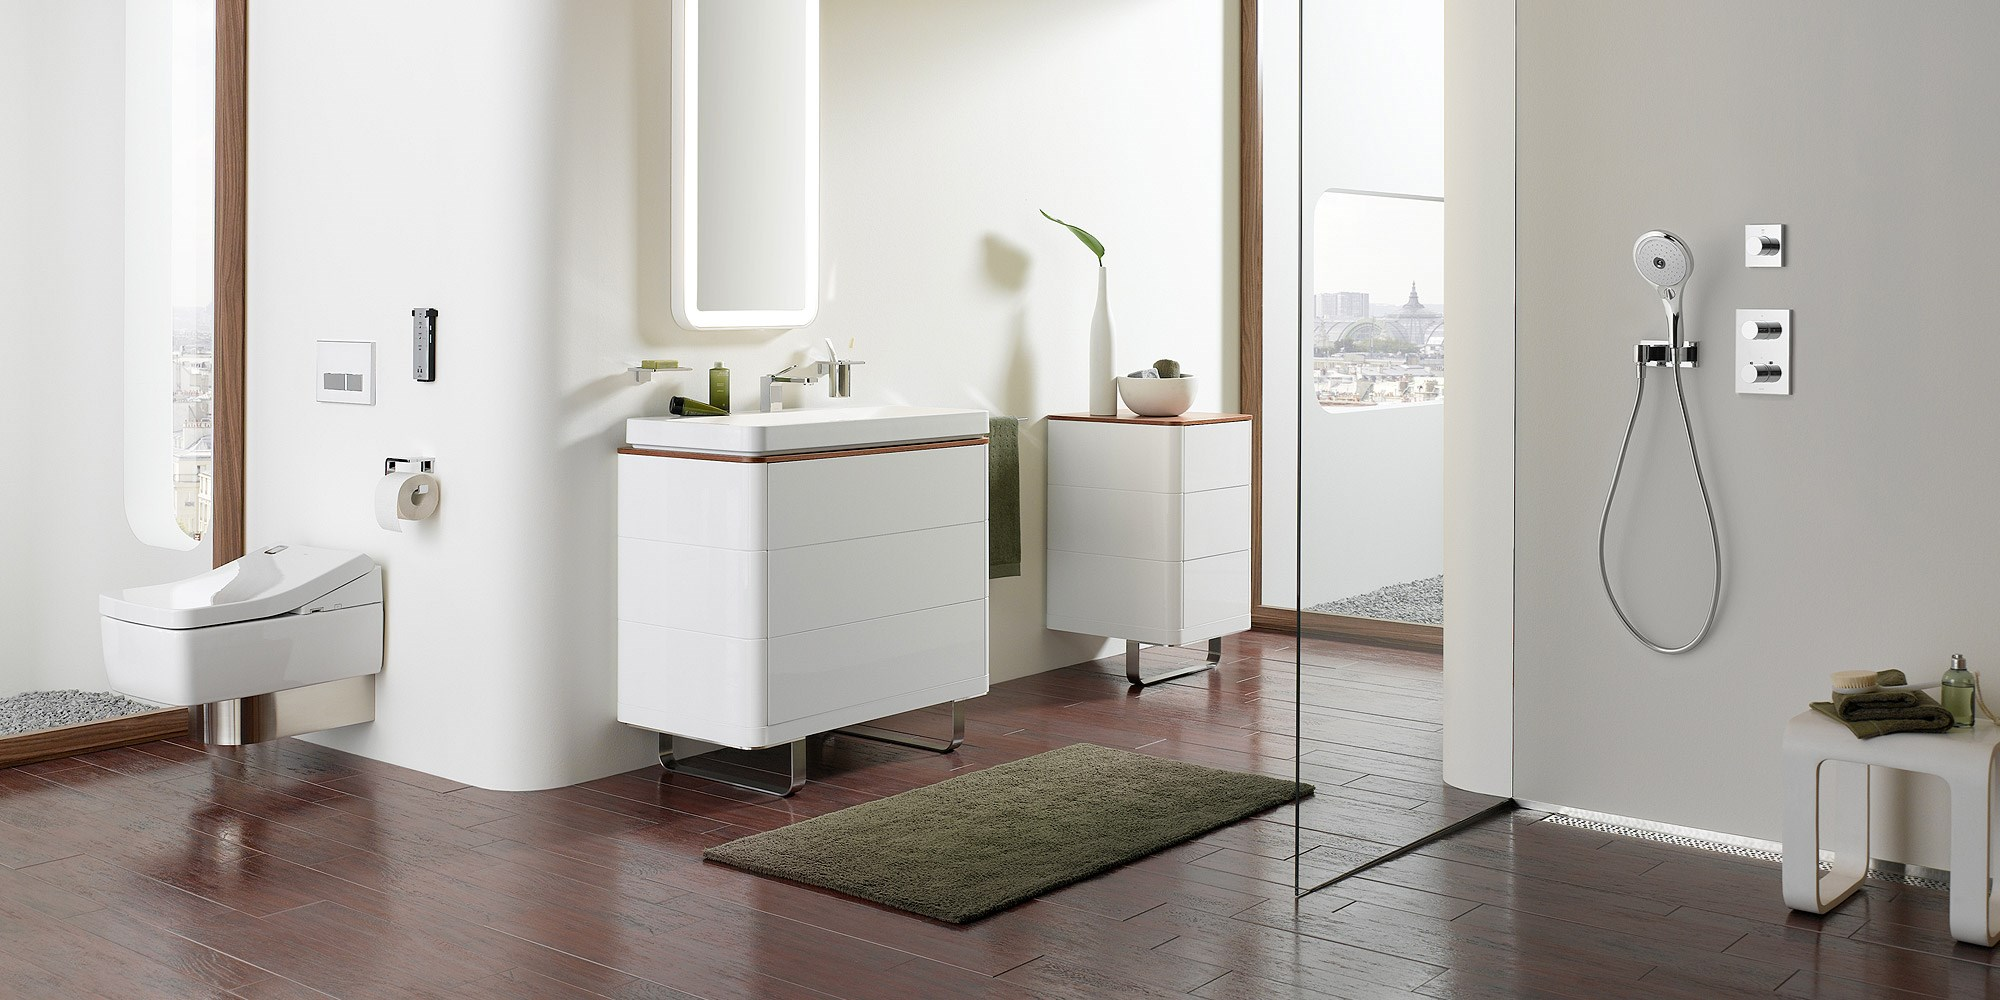 TOTO - Japan's leading producer of sanitary ware